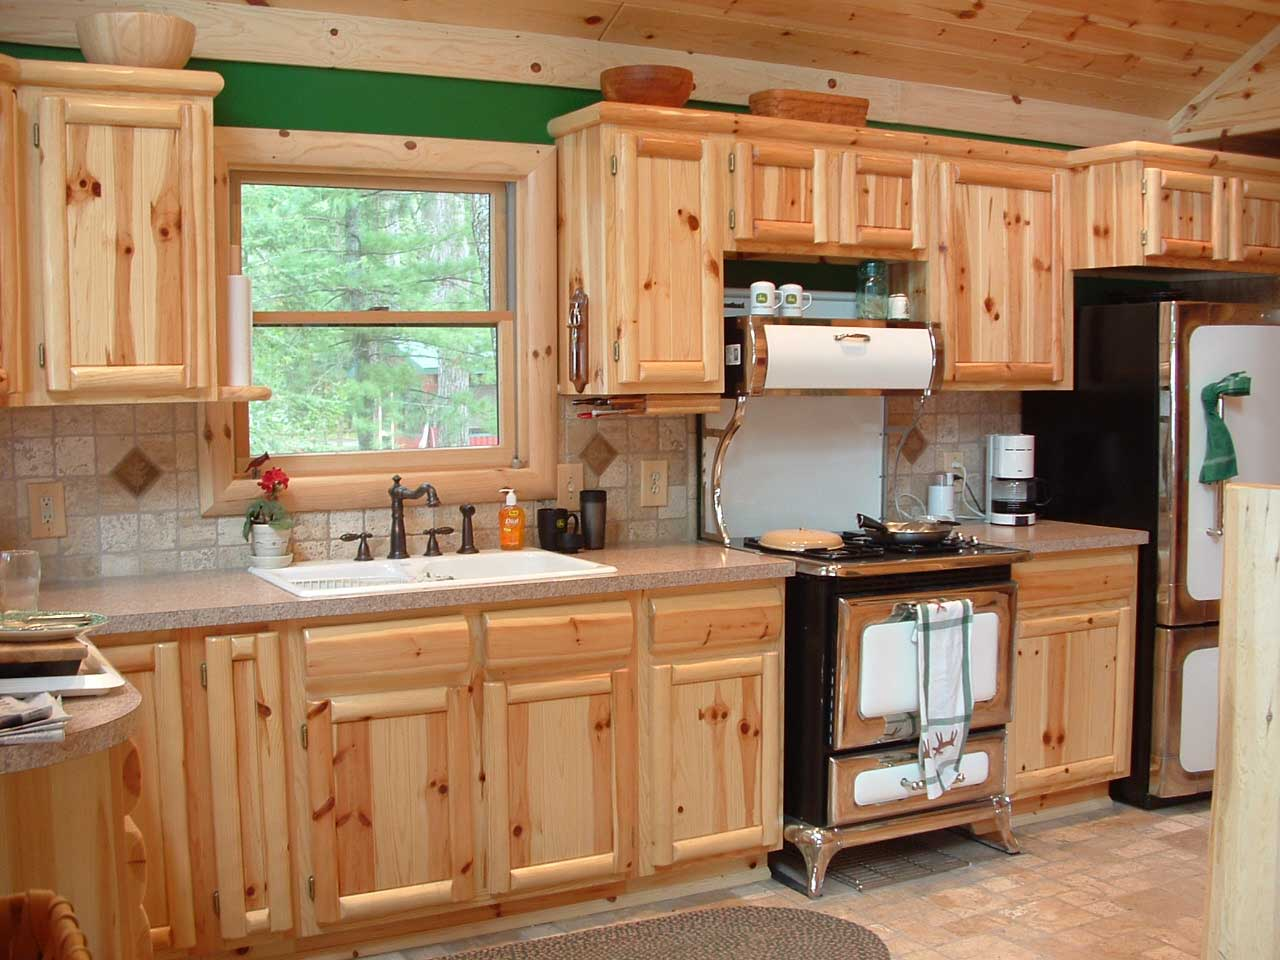 Knotty pine kitchen ceiling my vintage kitchen ideas - Knotty Pine Kitchen Ceiling My Vintage Kitchen Ideas 36